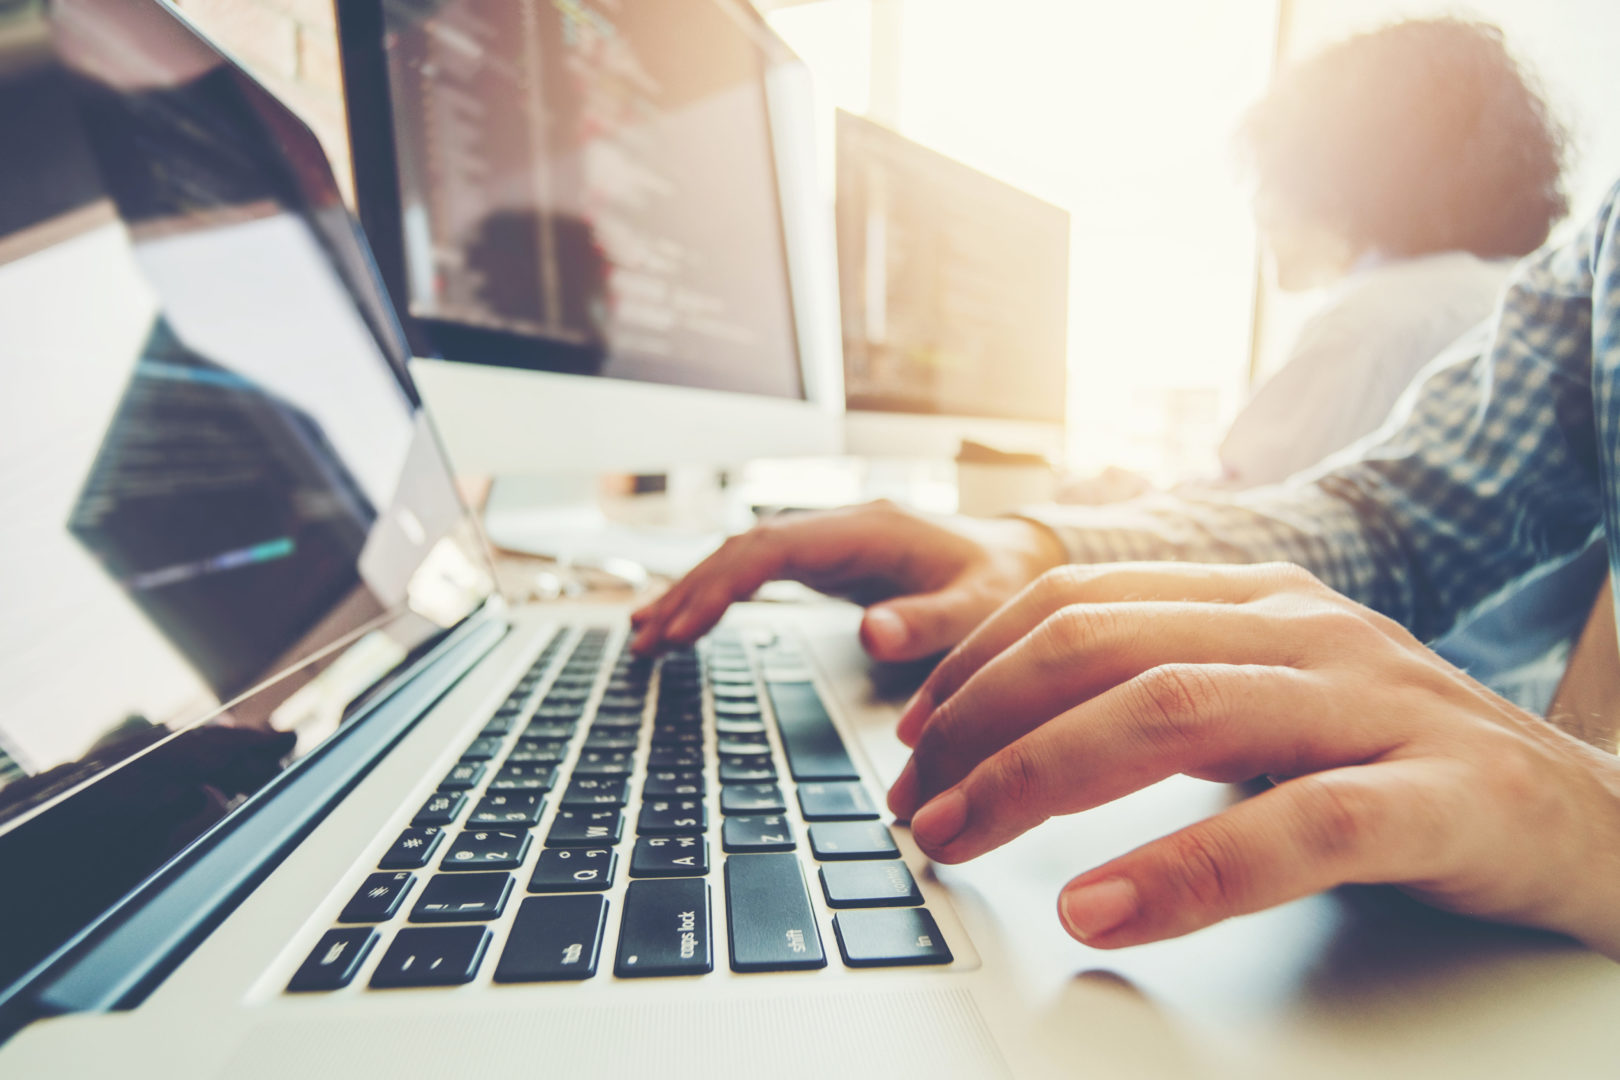 How to Choose the Best Managed I.T. Support for Your Business